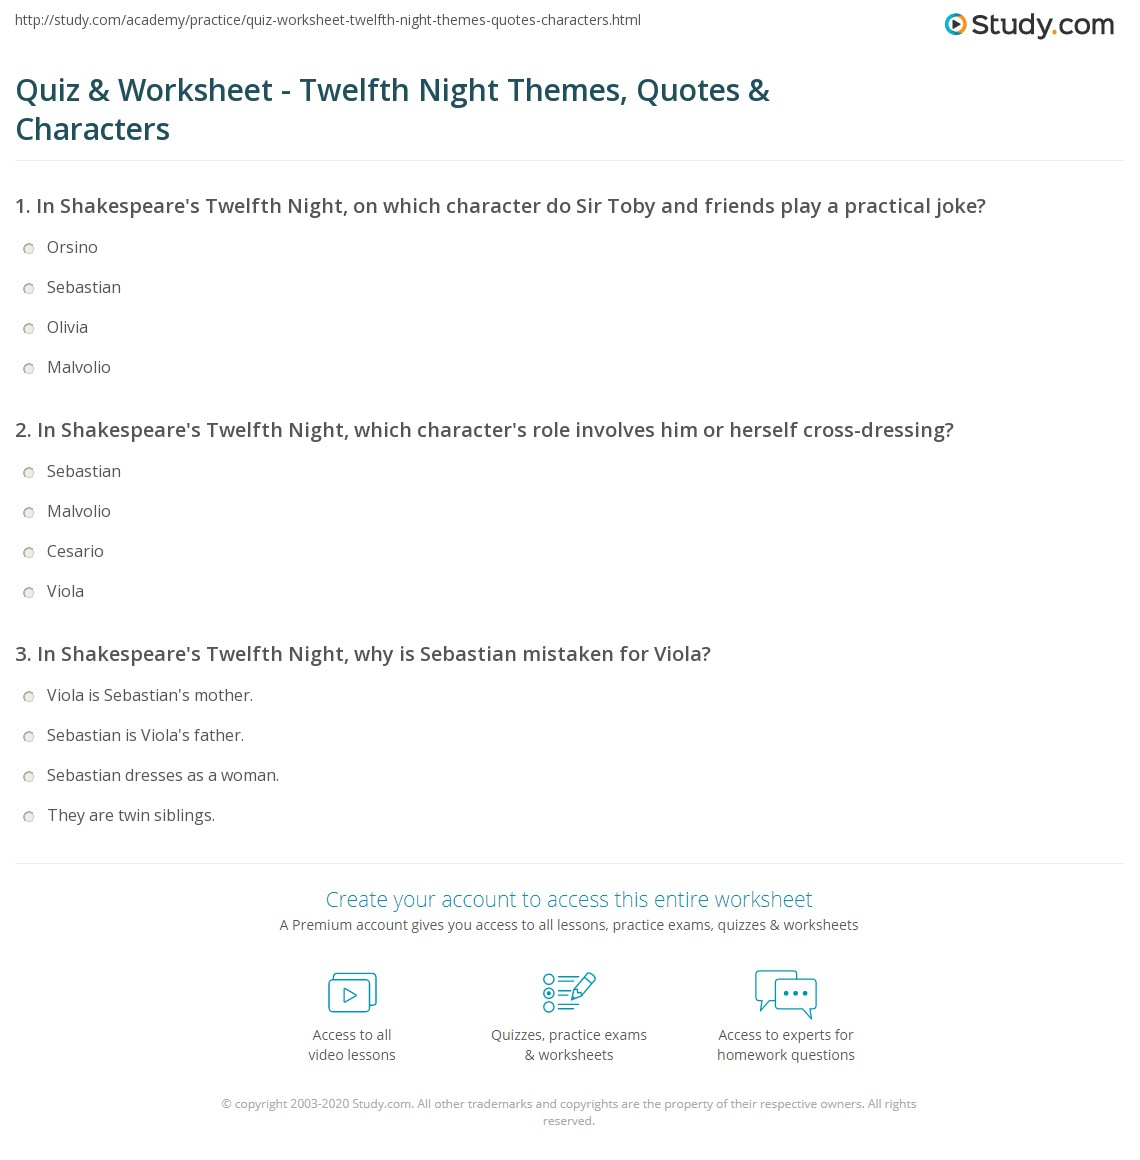 Quiz Worksheet Twelfth Night Themes Quotes Characters Study Com